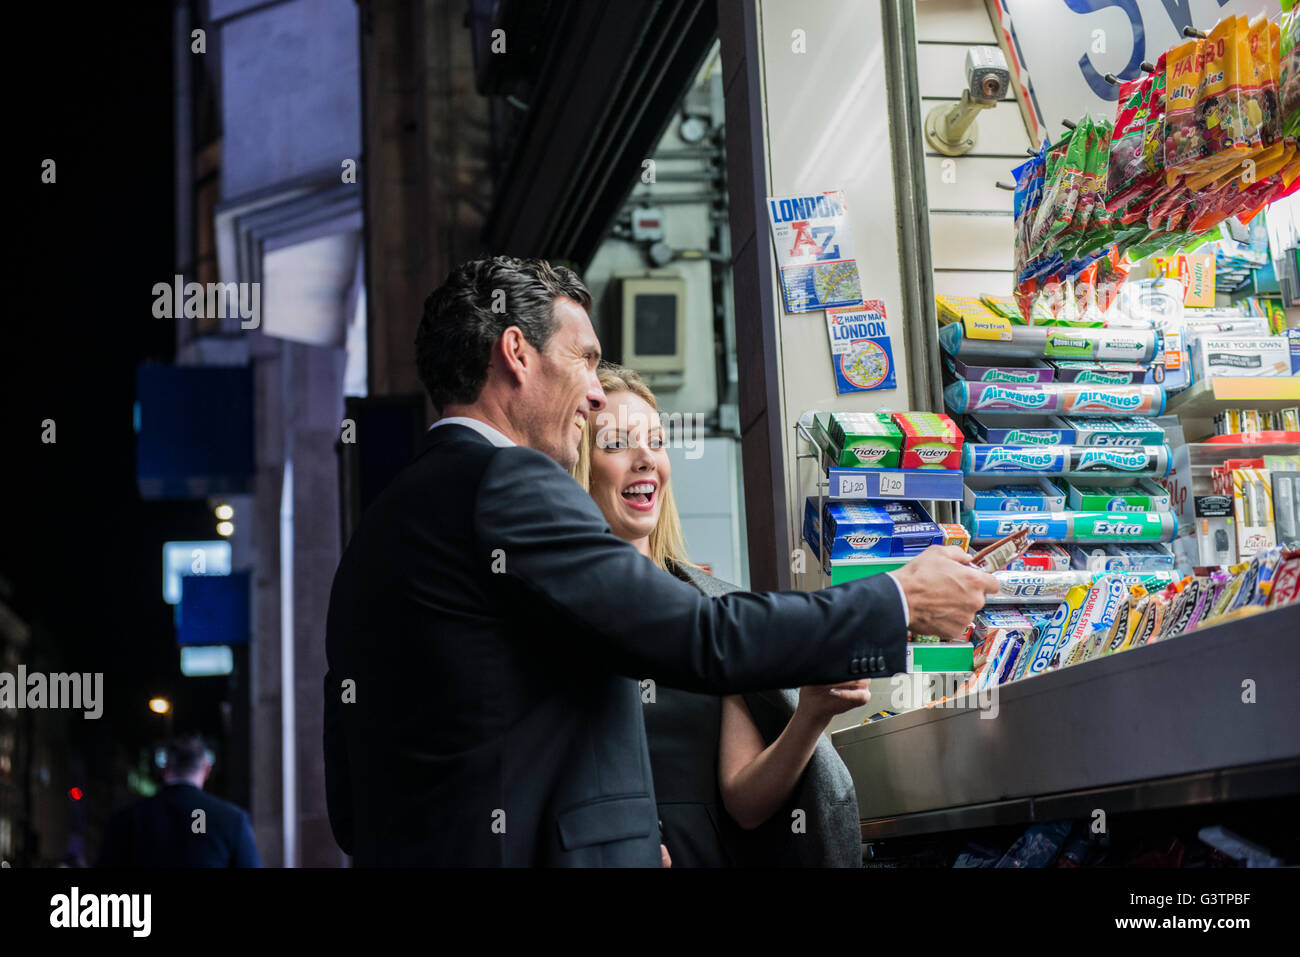 A smartly dressed couple buying confectionary from a kiosk on Oxford Street in London. - Stock Image